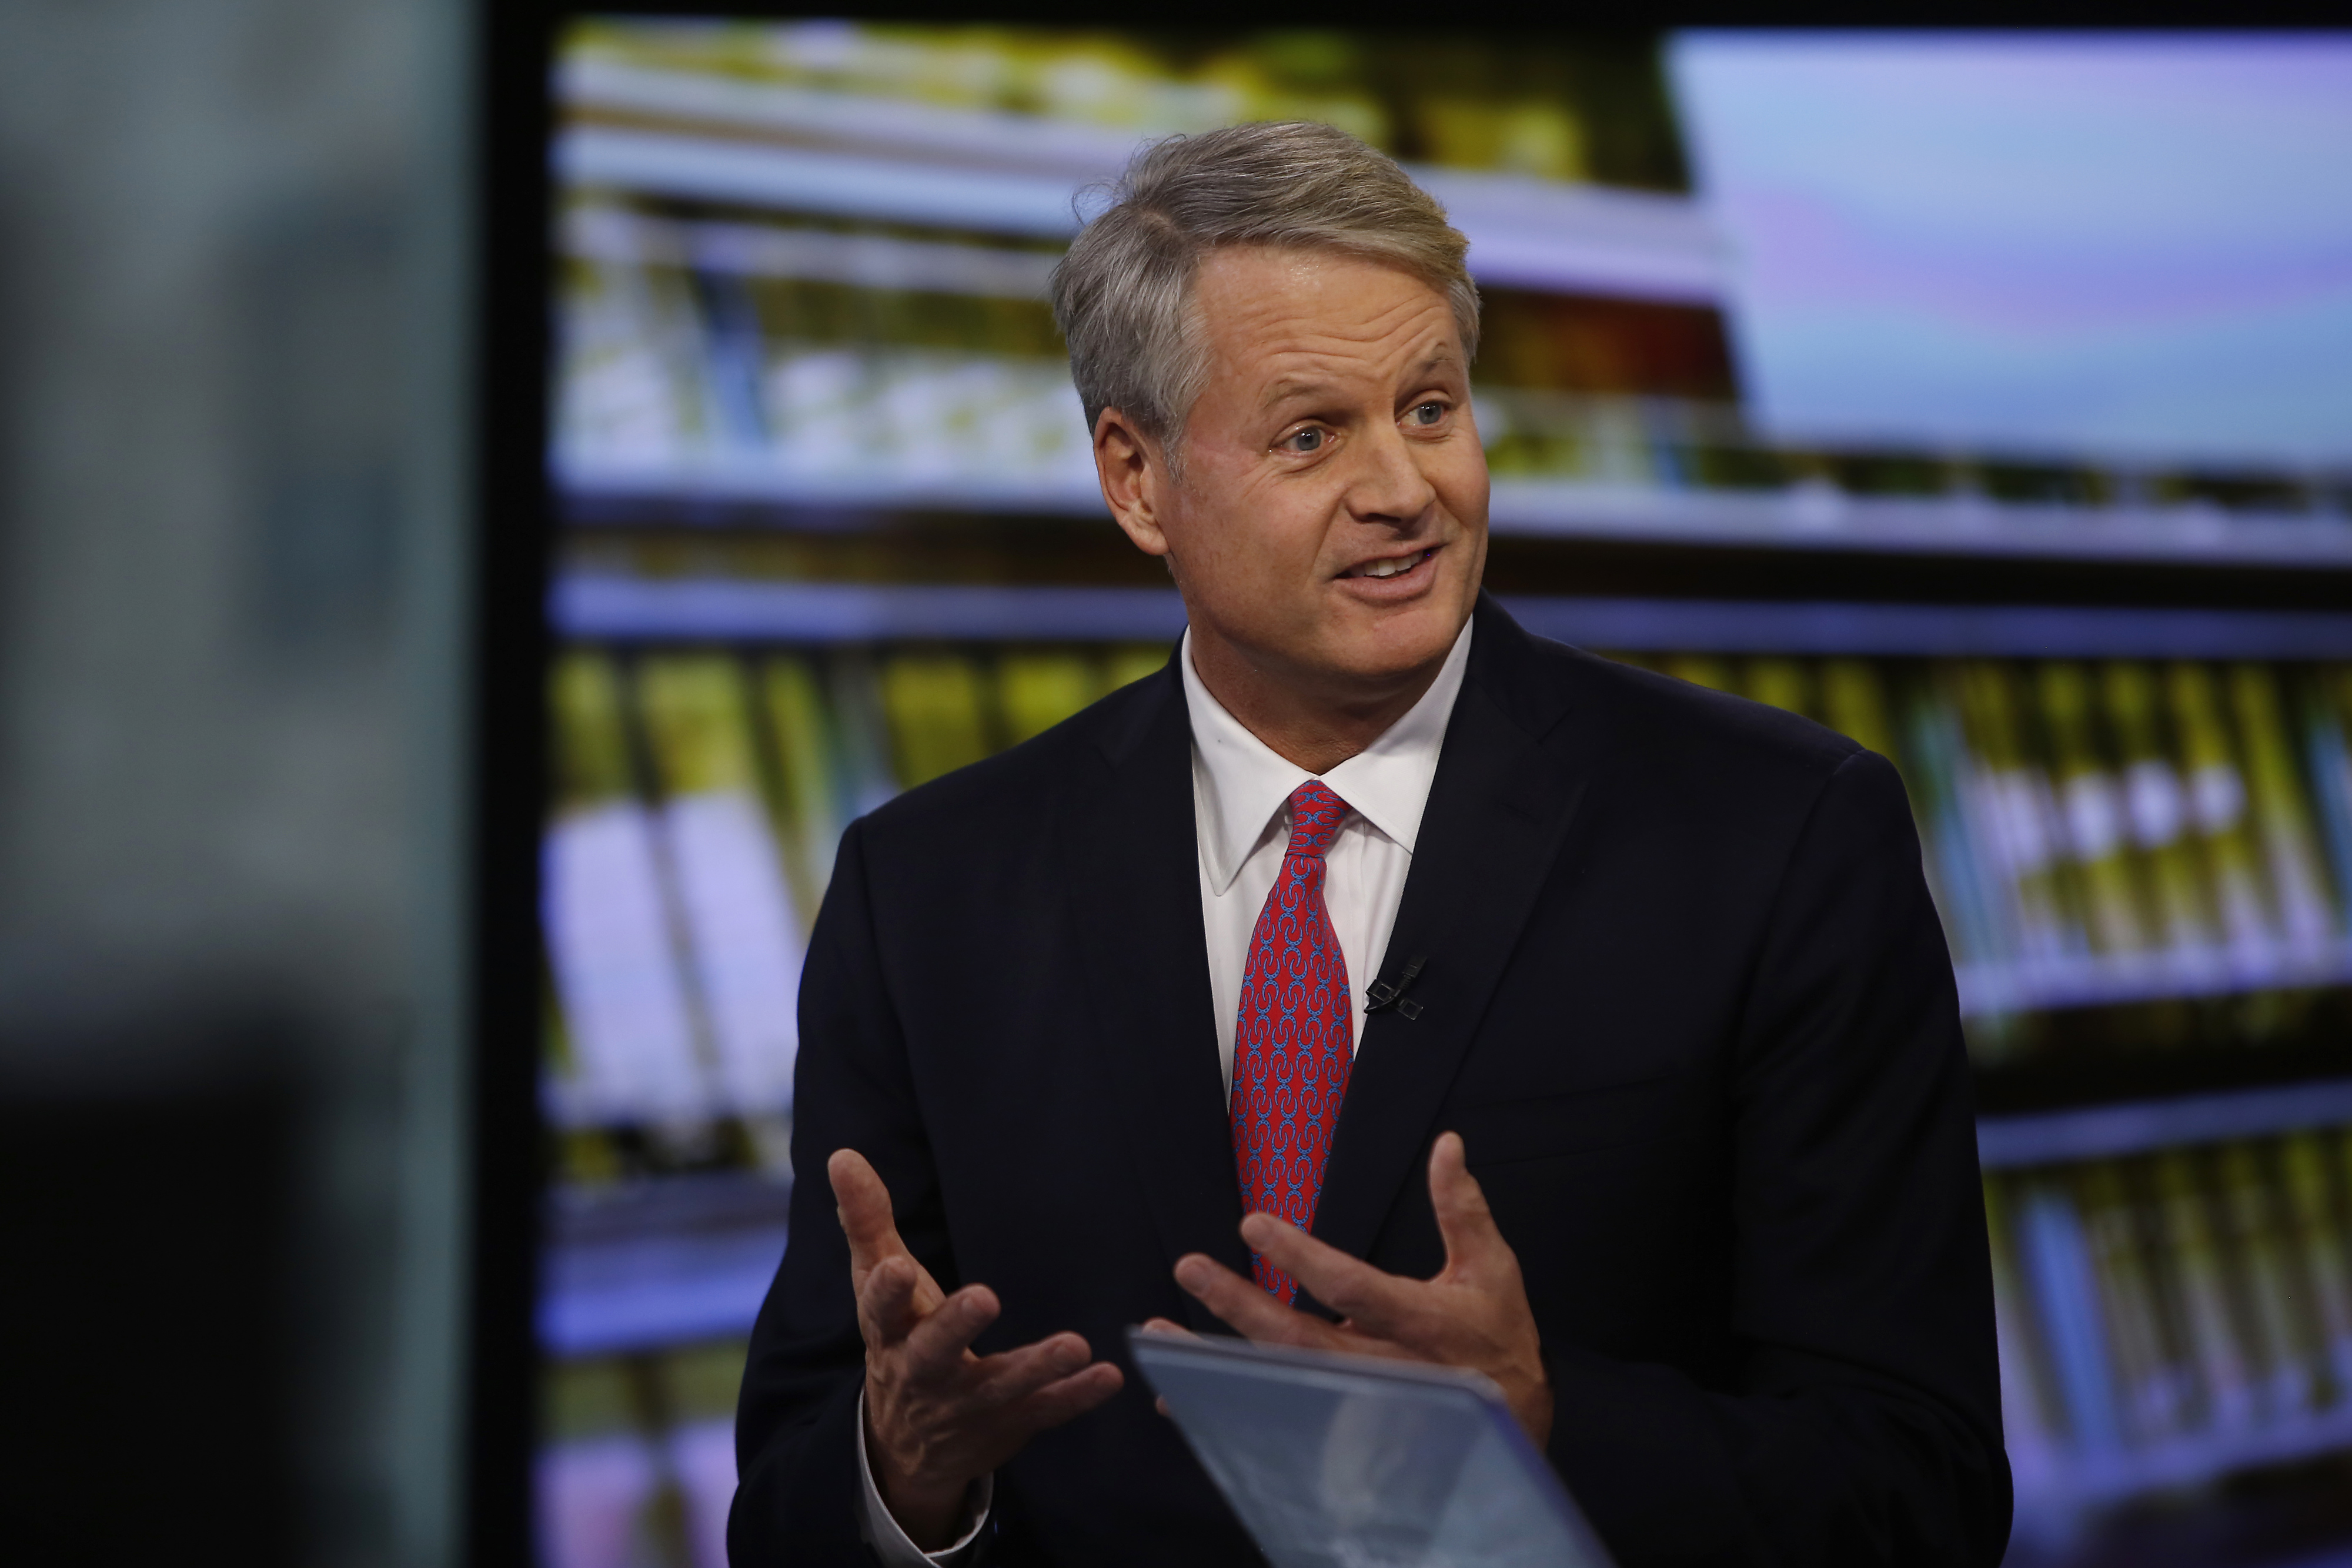 John Donahoe, president and chief executive officer of eBay Inc., speaks during a Bloomberg Television interview in New York, U.S., on Tuesday, Feb. 18, 2014.